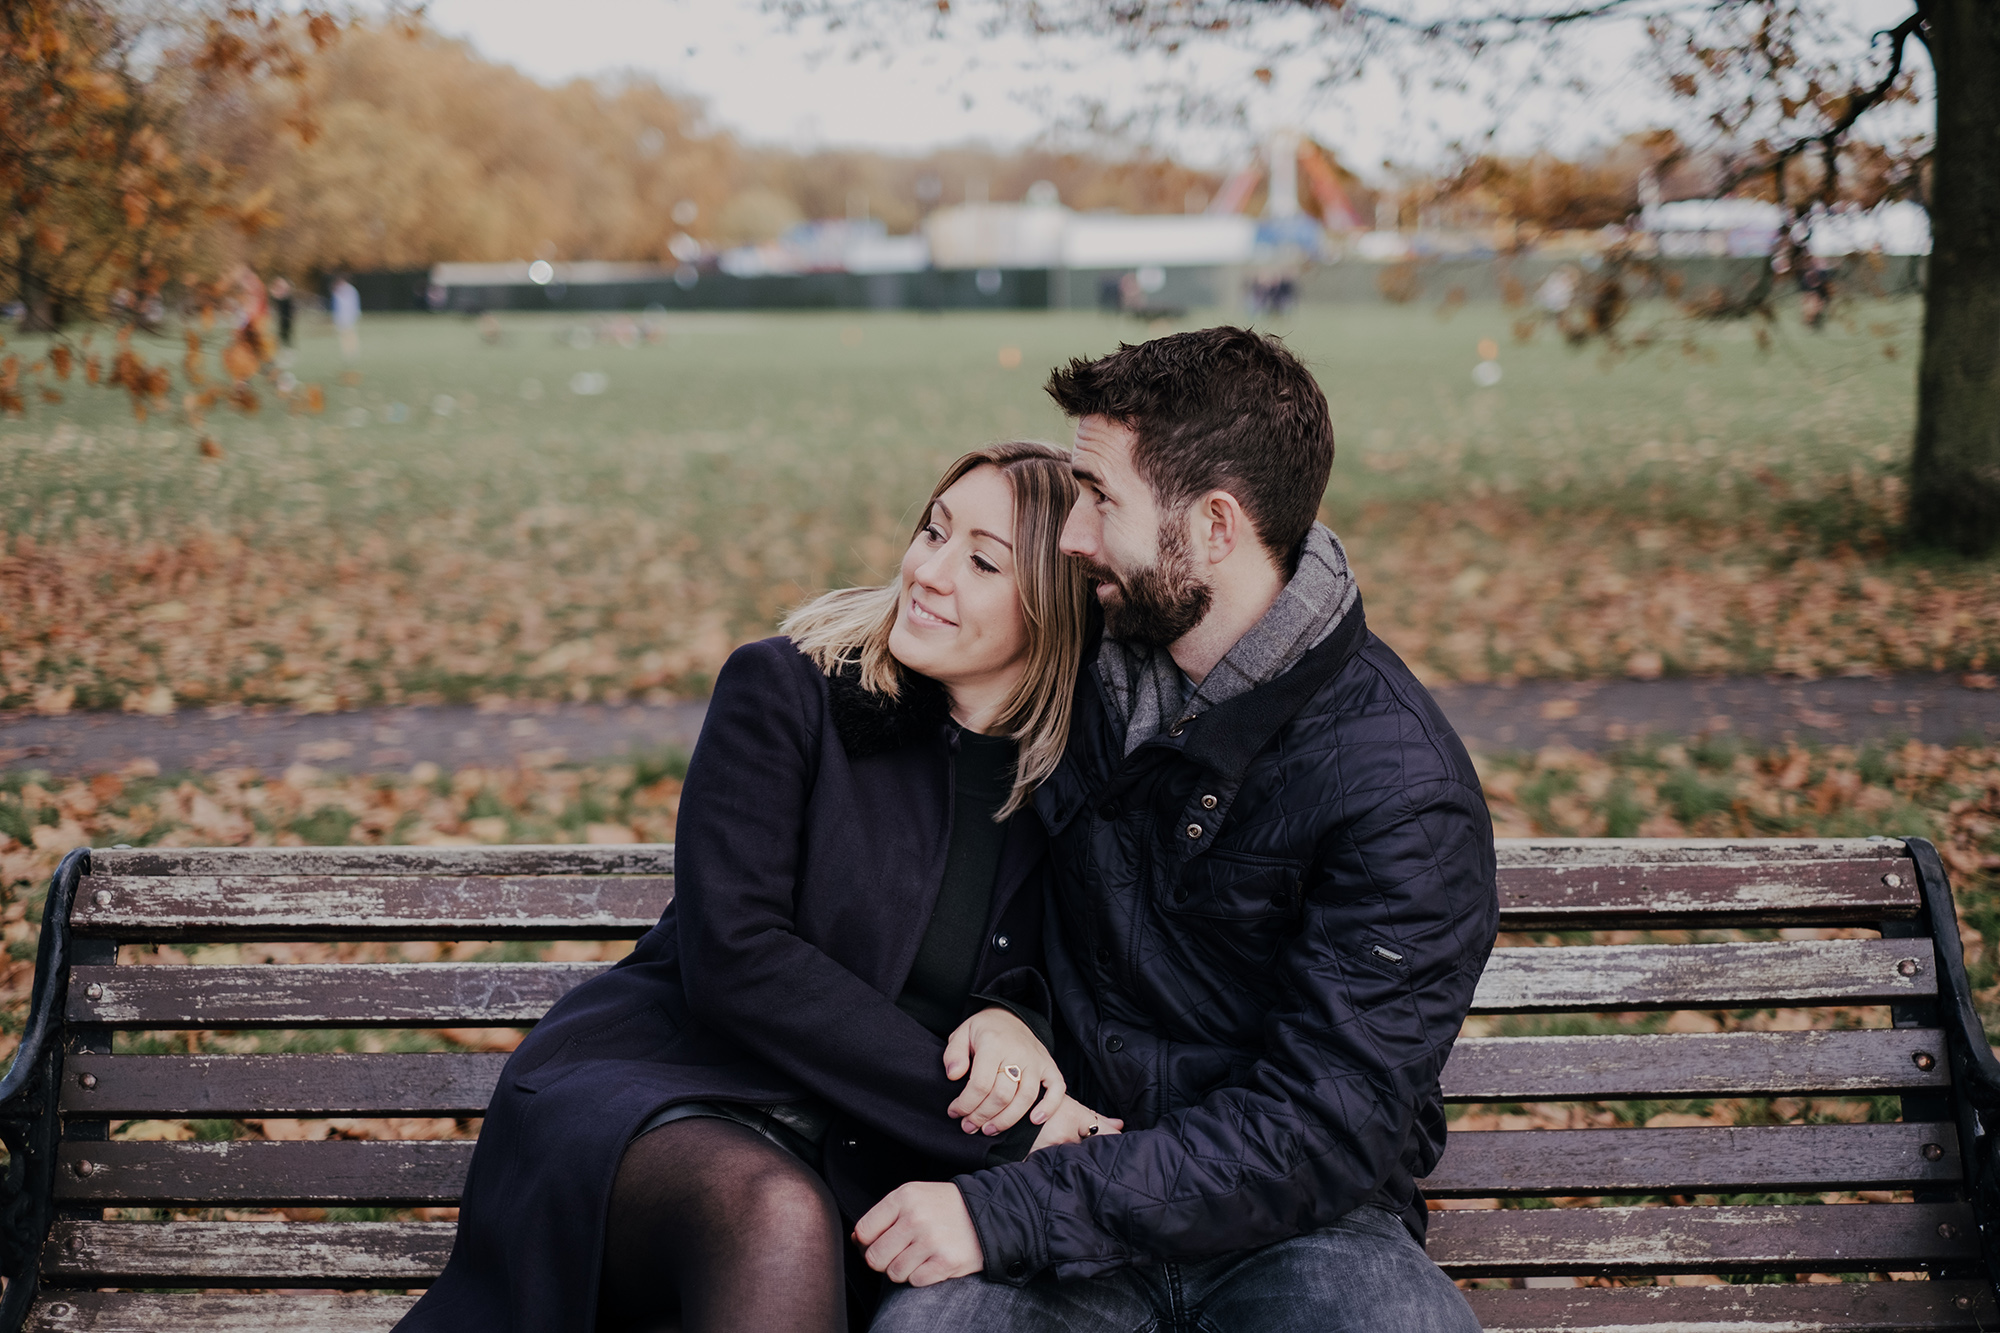 Clapham-common-engagement-photography.JPG